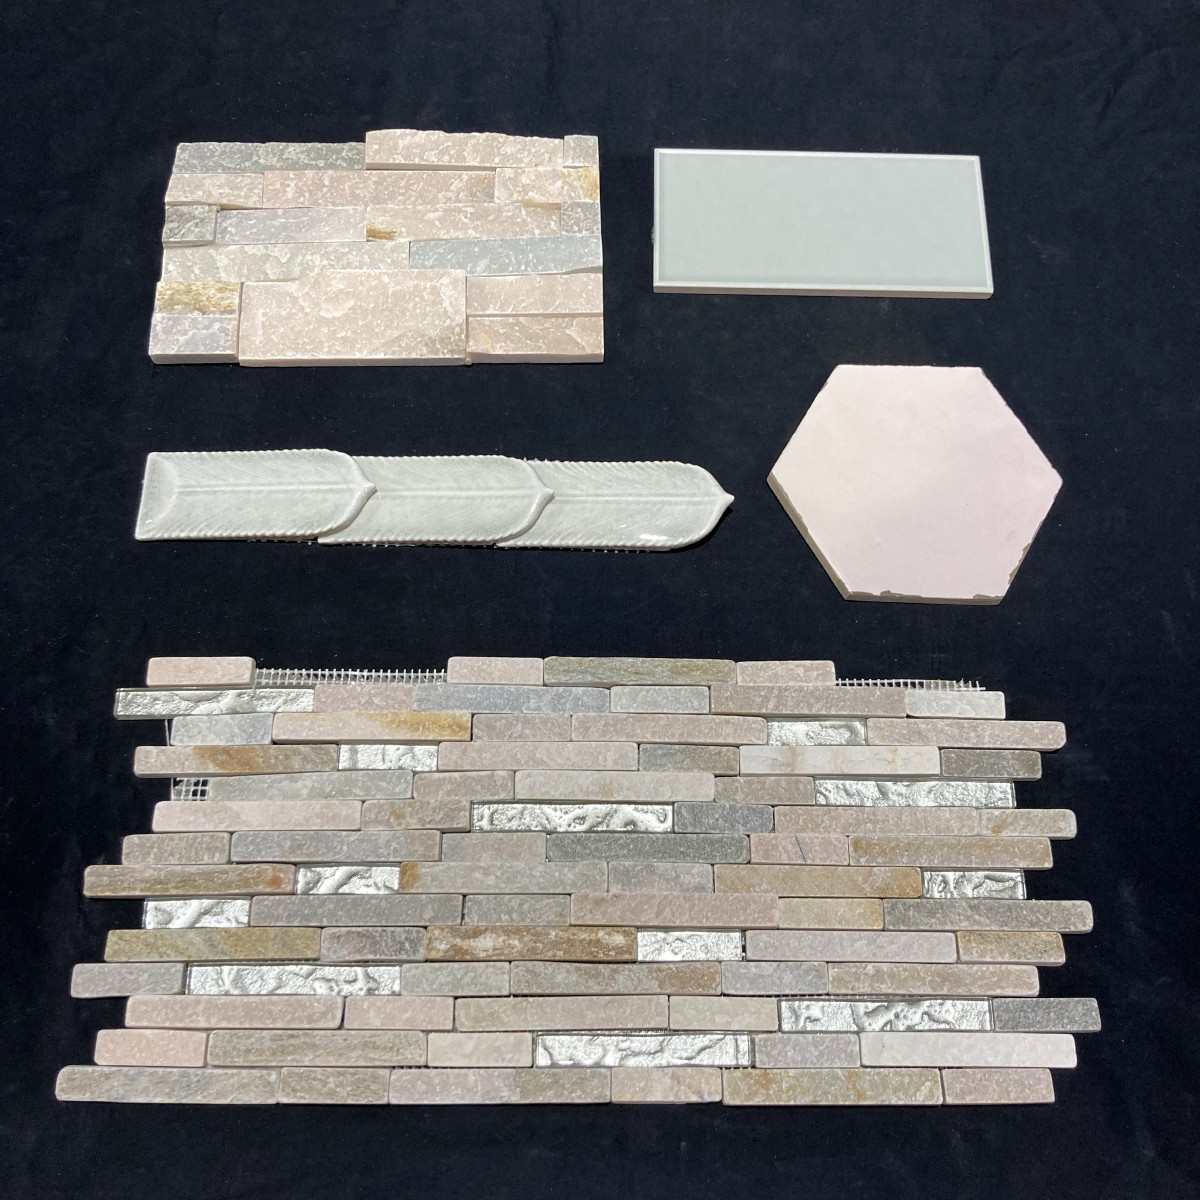 Seaside pearl, design inspiration for tile walls and floors made by Granite Division from Tyler Texas